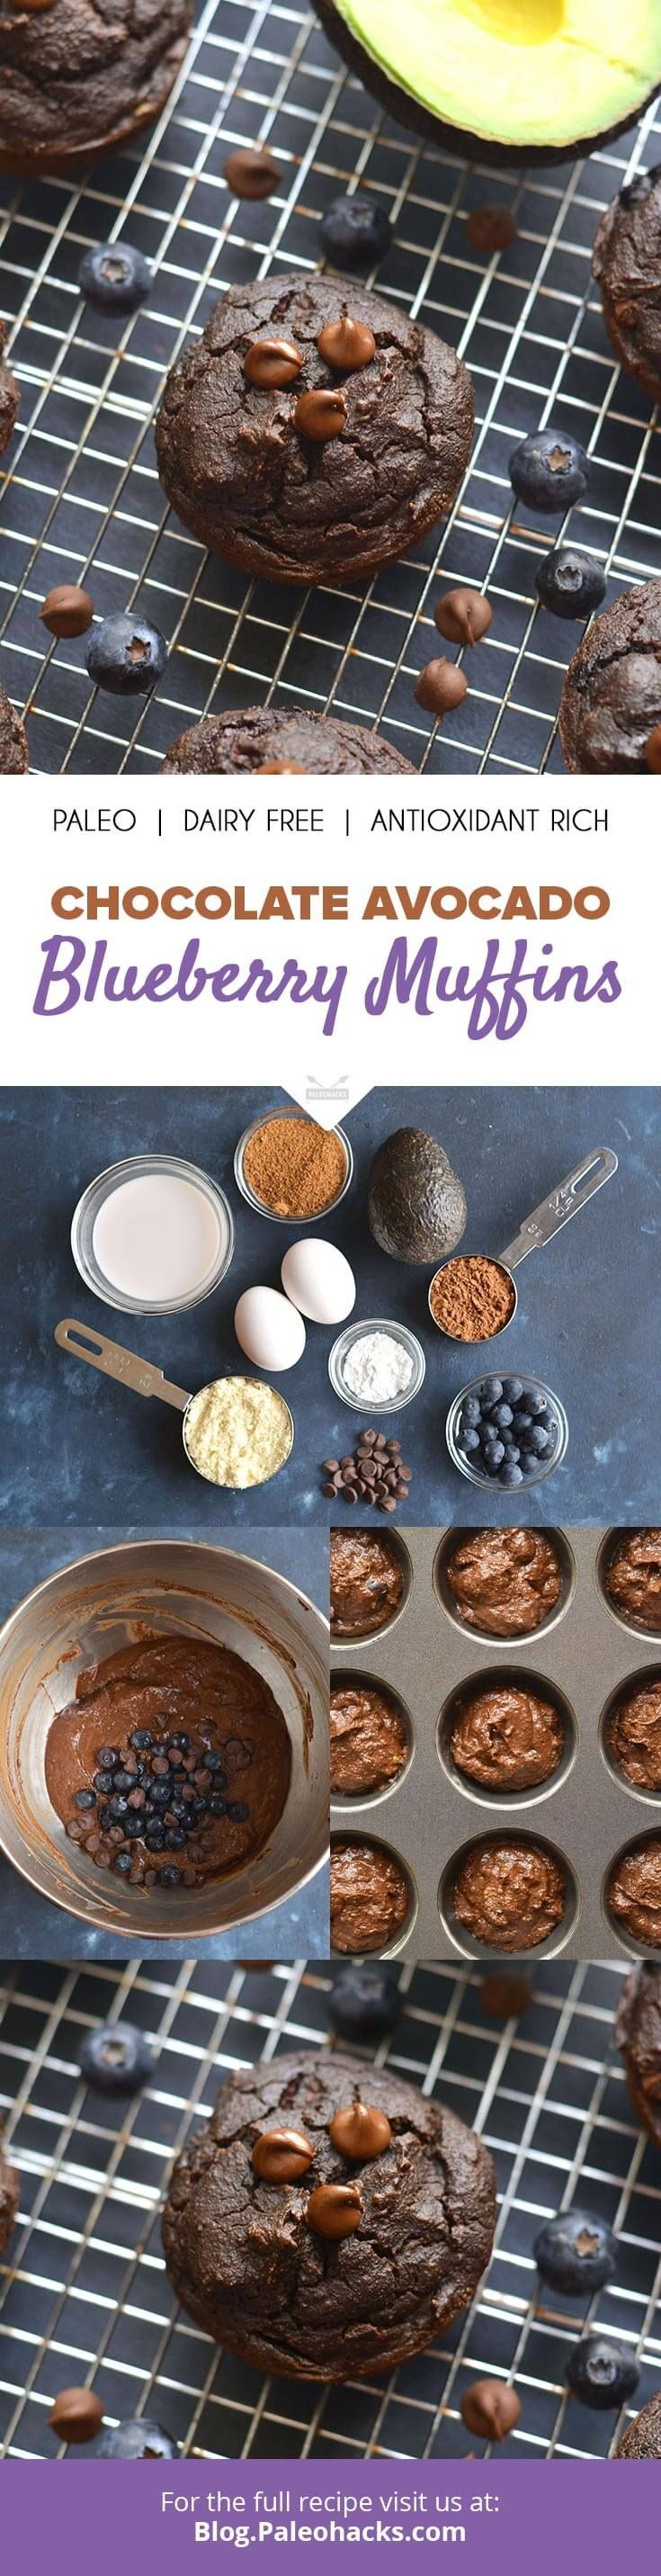 These creamy Paleo blueberry muffins are packed with avocado, blueberries and dark chocolate – an antioxidant dream! Get the recipe here: http://paleo.co/chocavomuffins